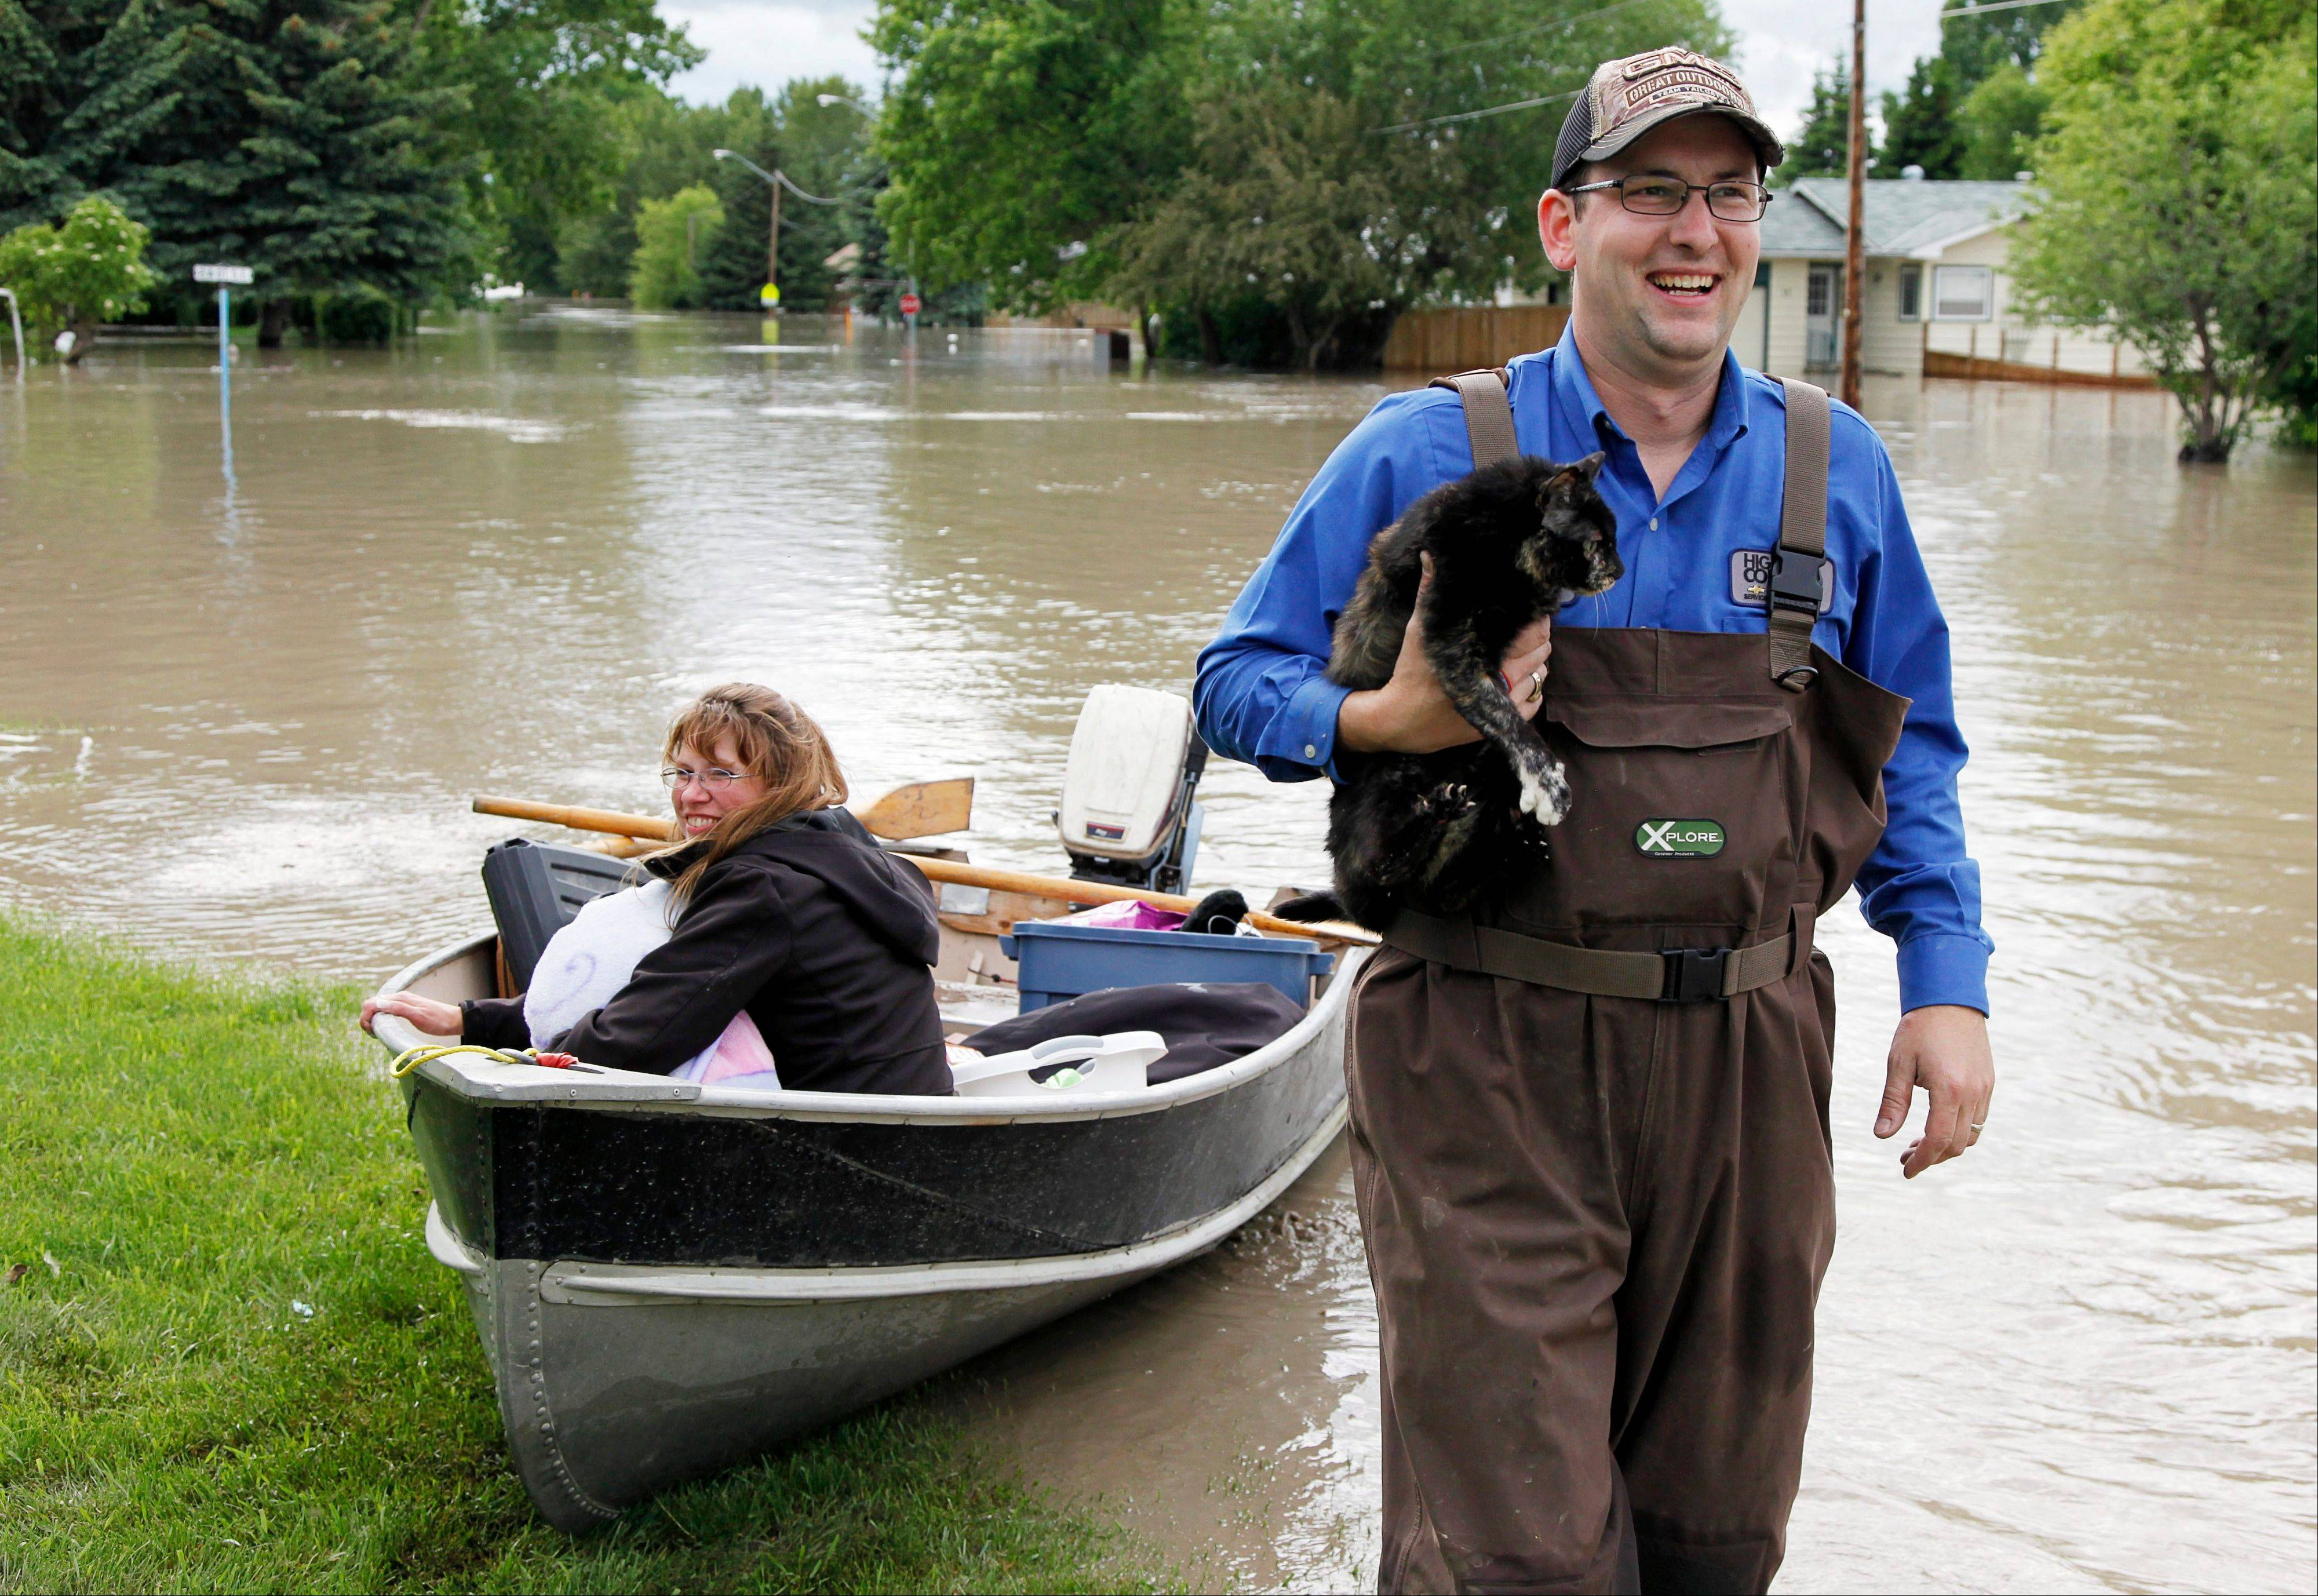 Roger Poirier, holds his family's cat, Smartie, as his wife Crystal looks on after rescuing it from their flooded house in High River, Alta., Thursday, June 20, 2013.